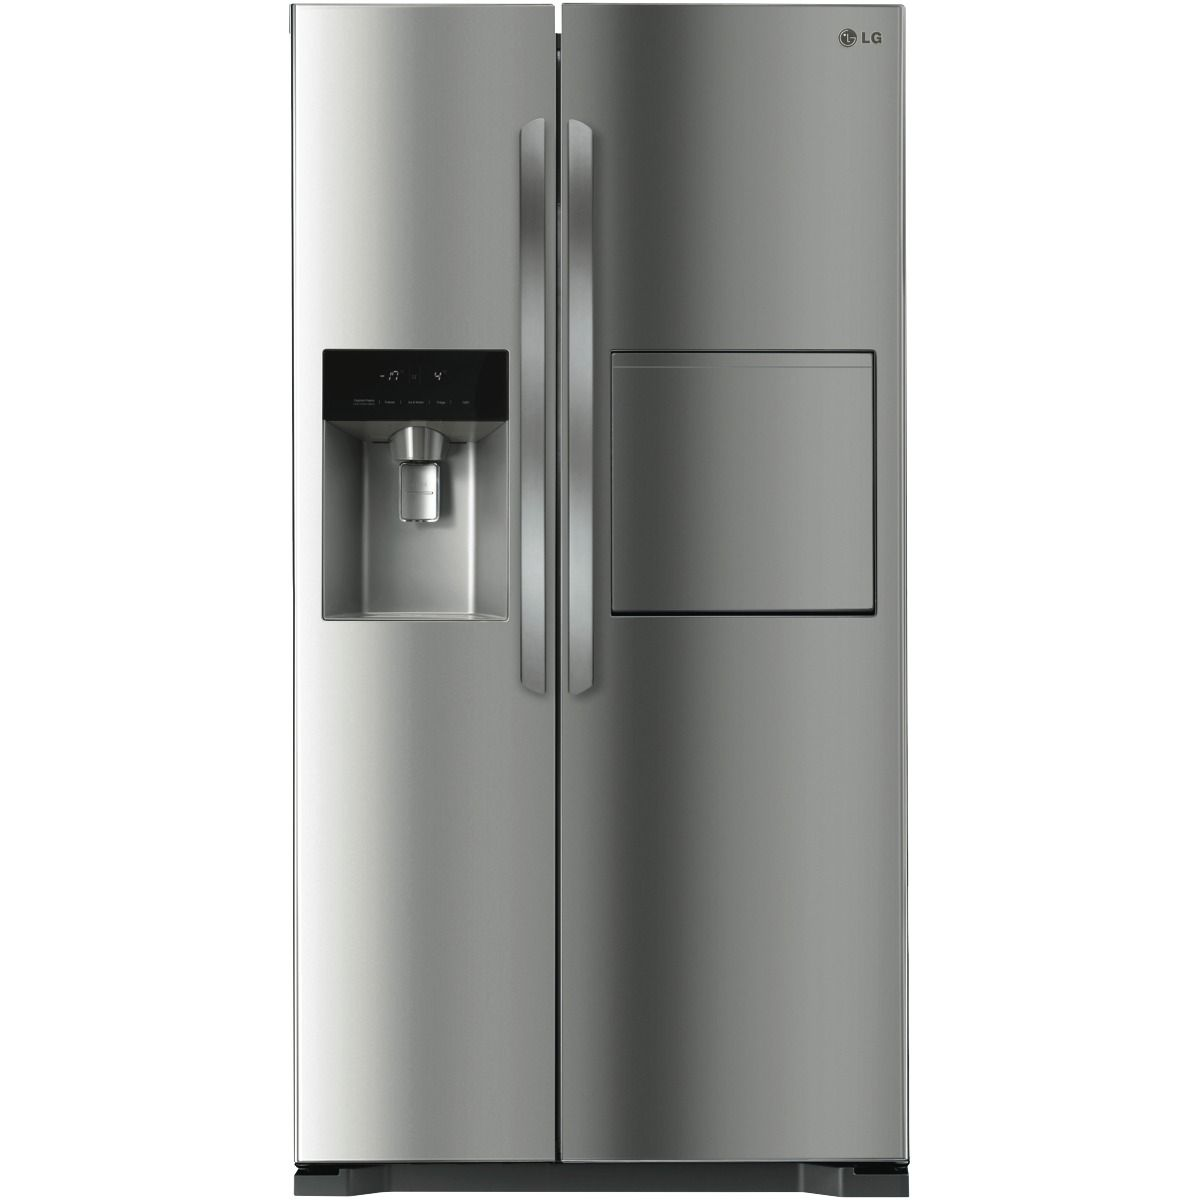 Uncategorized Good Guys Kitchen Appliances lg gc p197hpl 563l side by refrigerator at the good guys guys